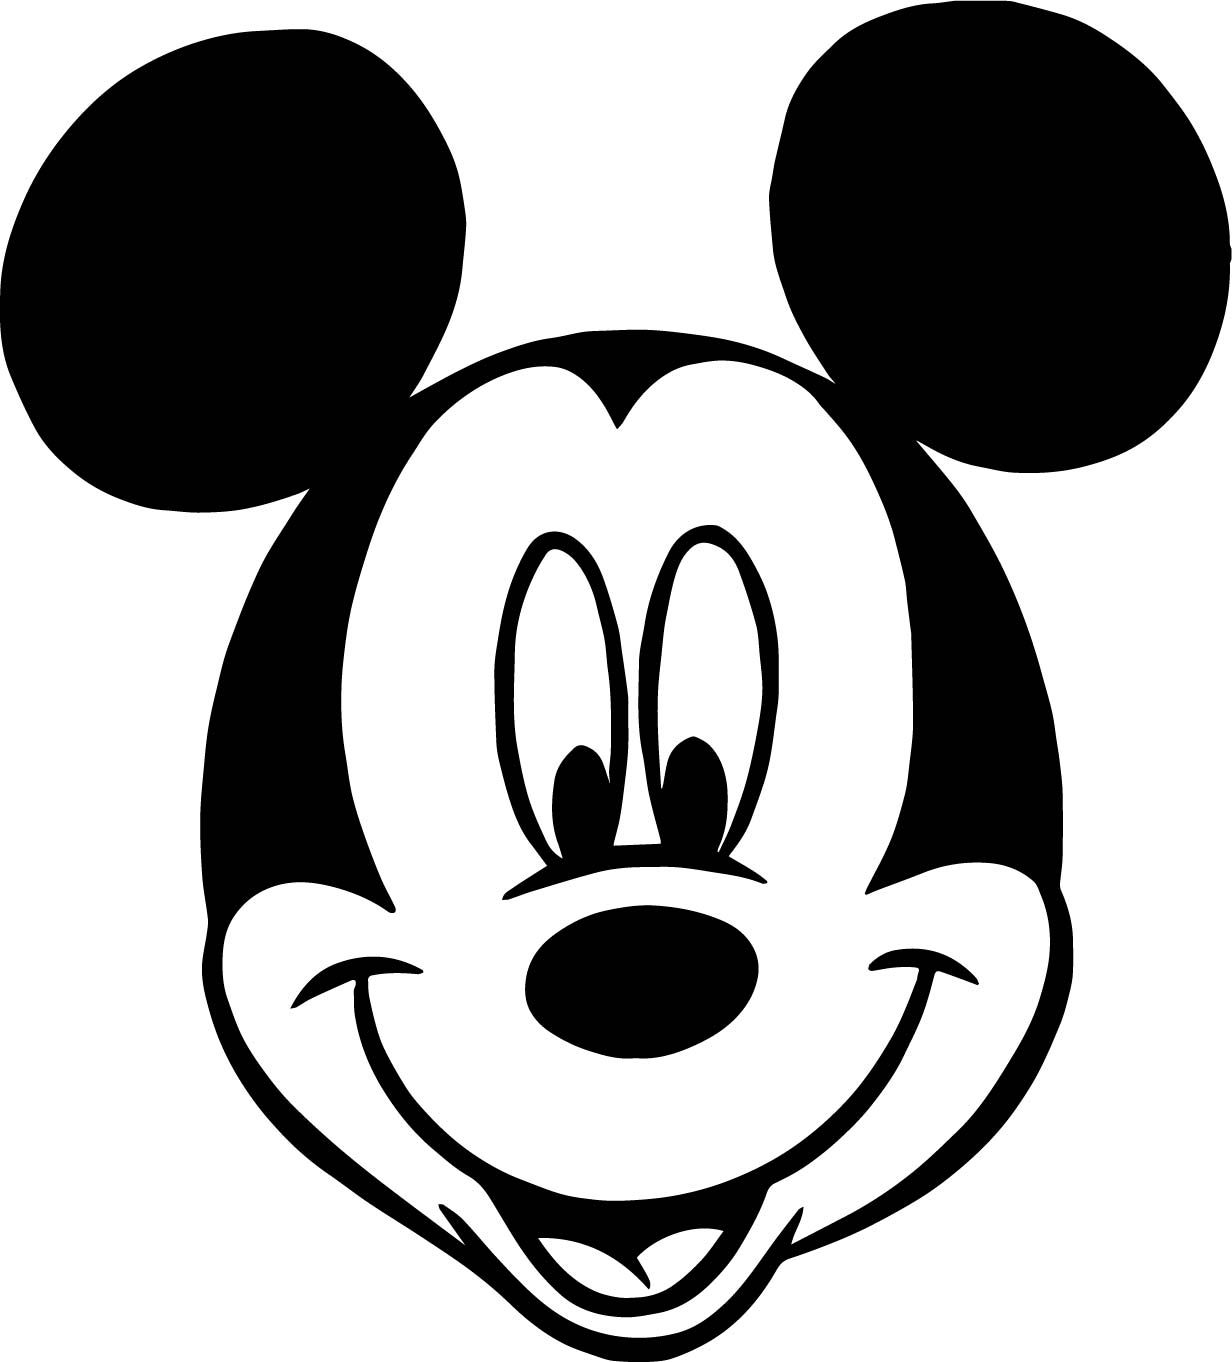 Mickey mouse face cartoon coloring page coloring pages pinterest